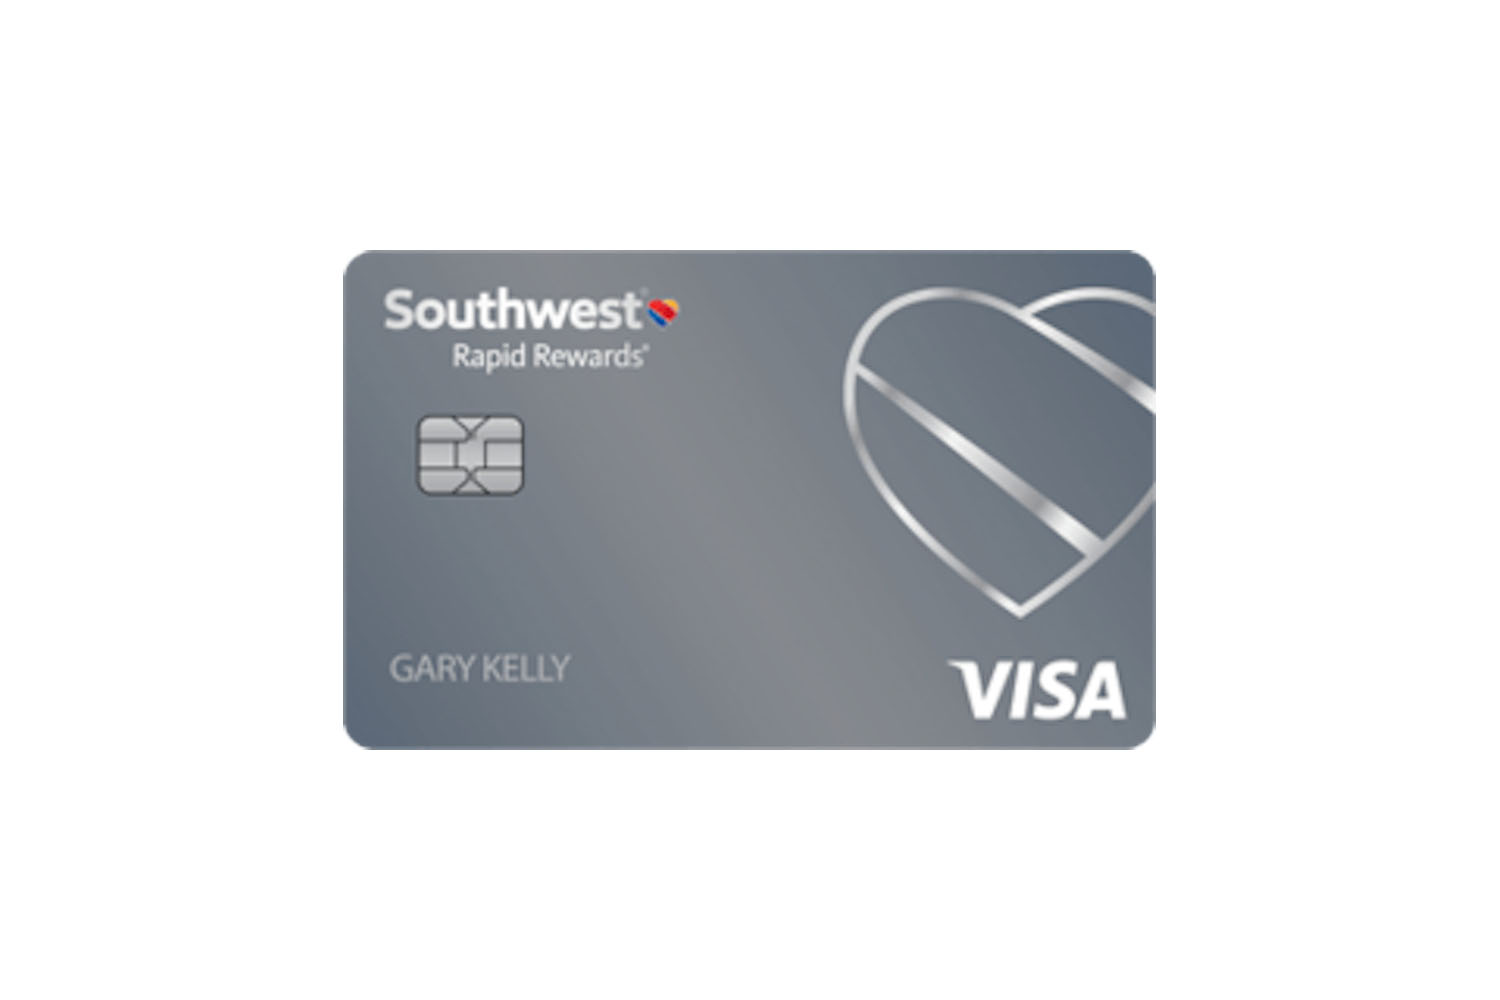 Southwest Card